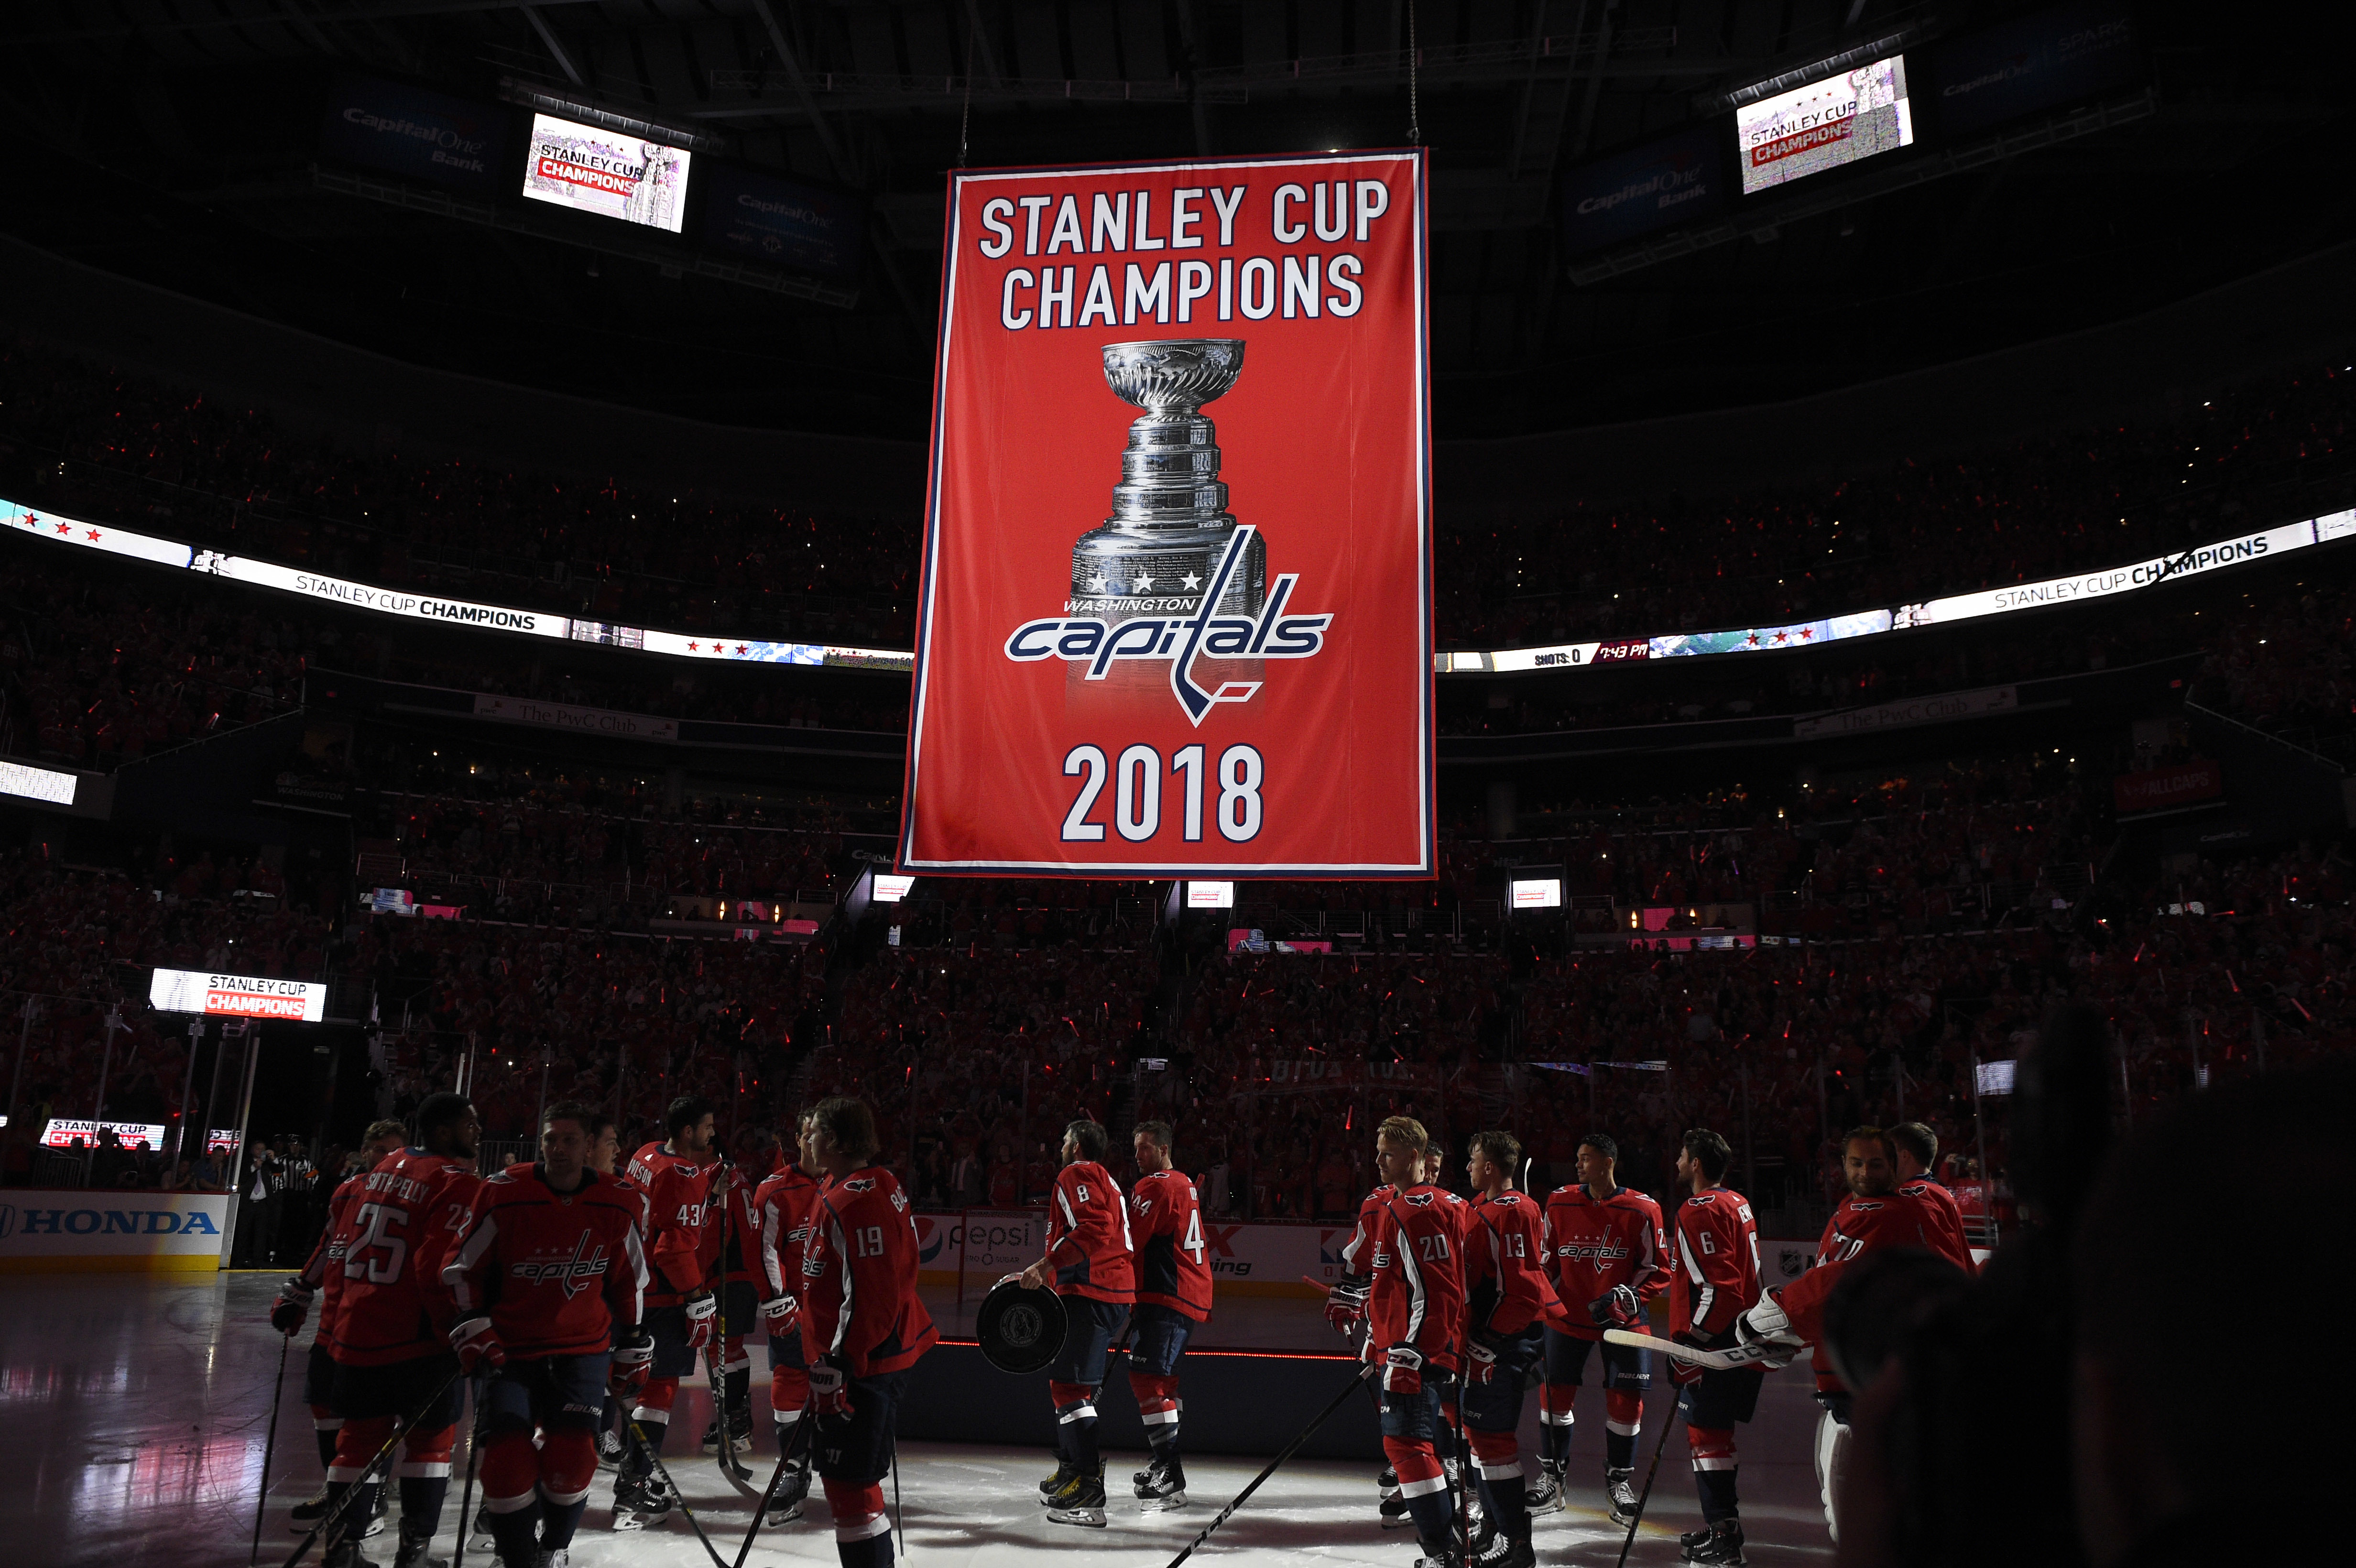 Capitals raise Stanley Cup banner to kick off new season - Washington Times 90a5e248f76